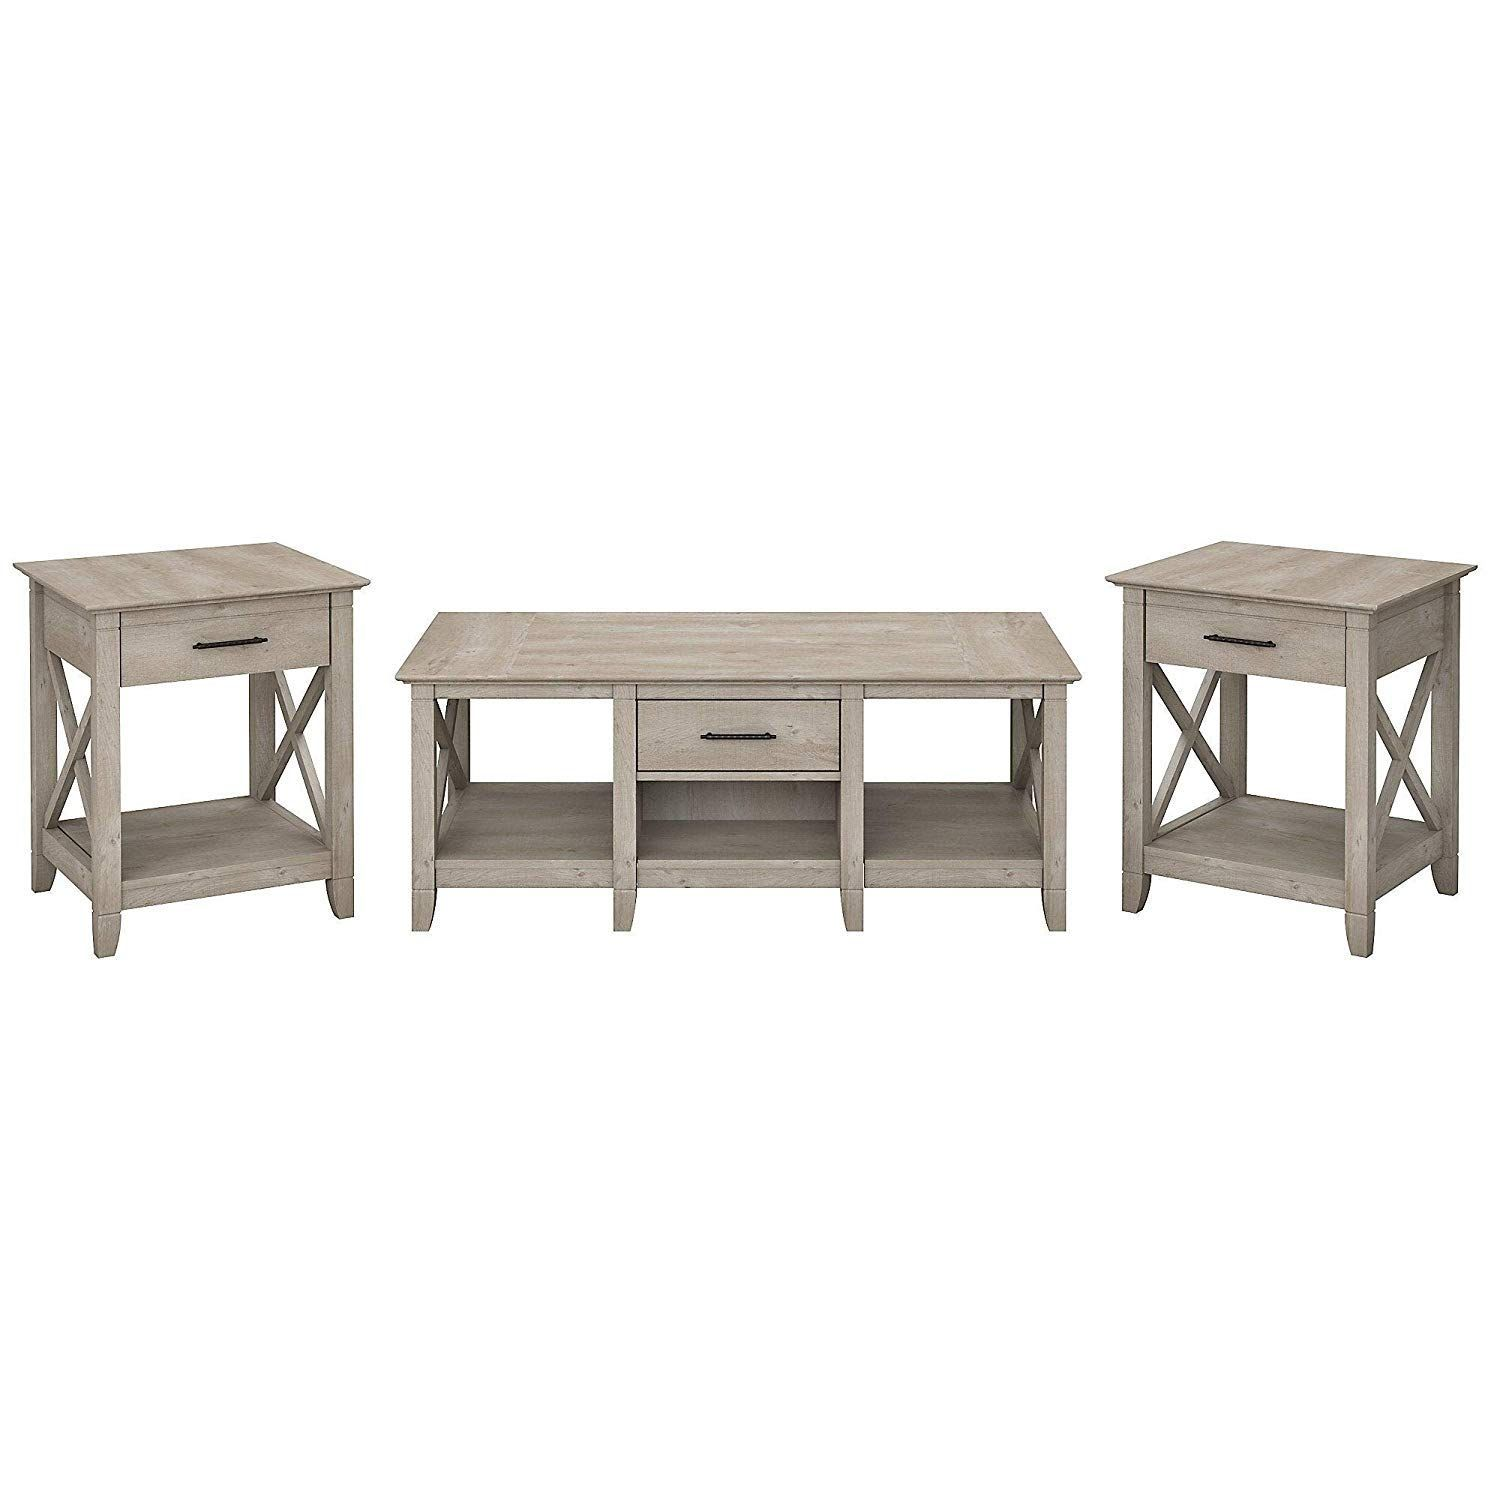 Top Rated Coastal Living Room Table Sets And Living Room Furniture We Love Be In 2020 Coastal Living Room Furniture Living Room Table Sets Beach Living Room Furniture